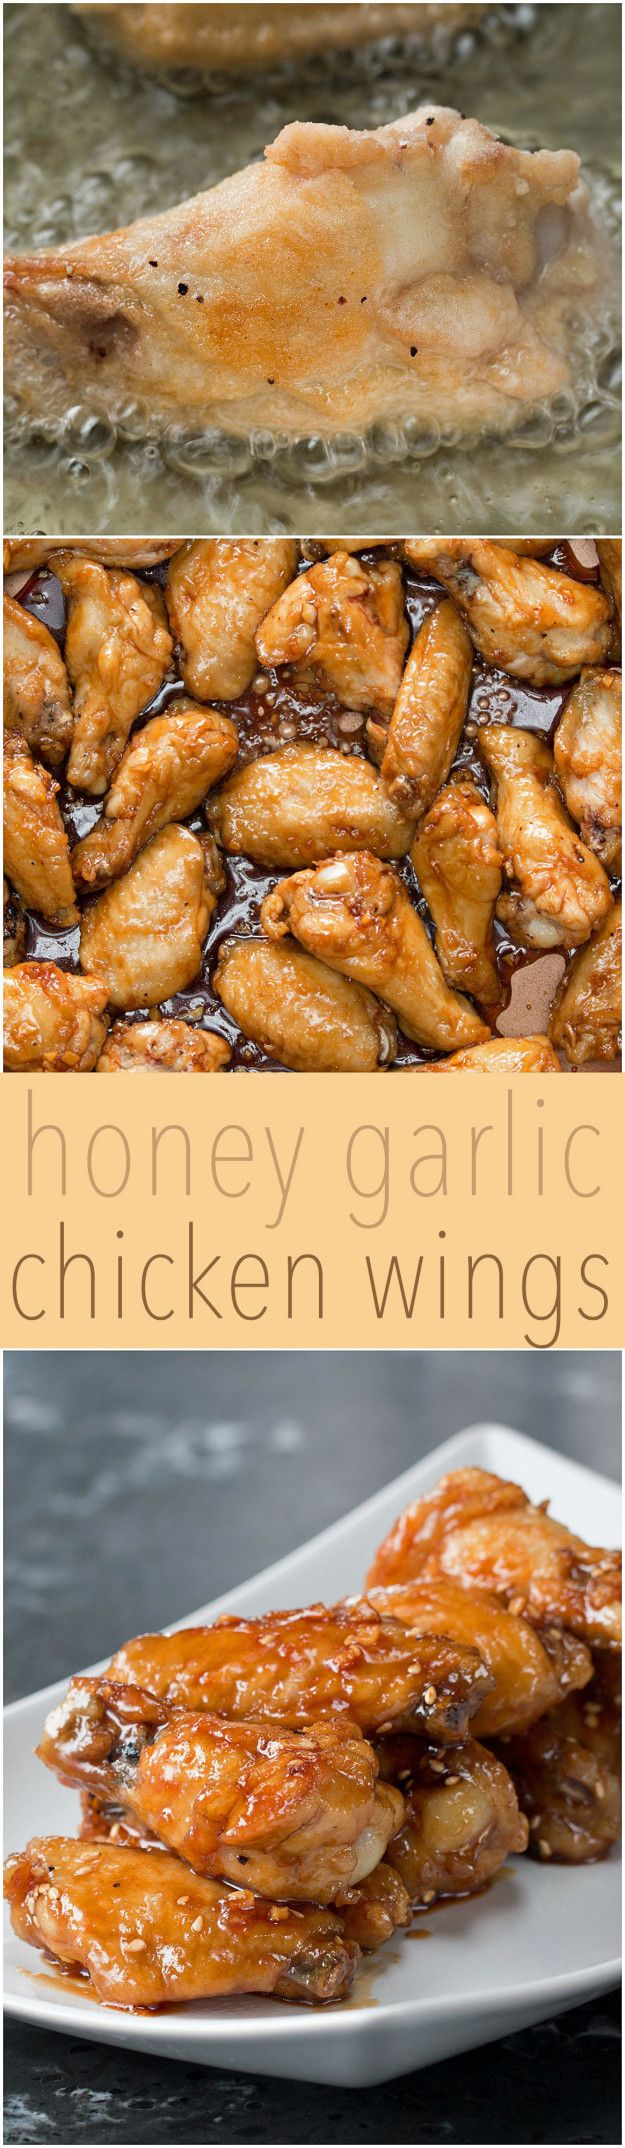 Honey Garlic Chicken Wings                                                                                                                                                                                 More